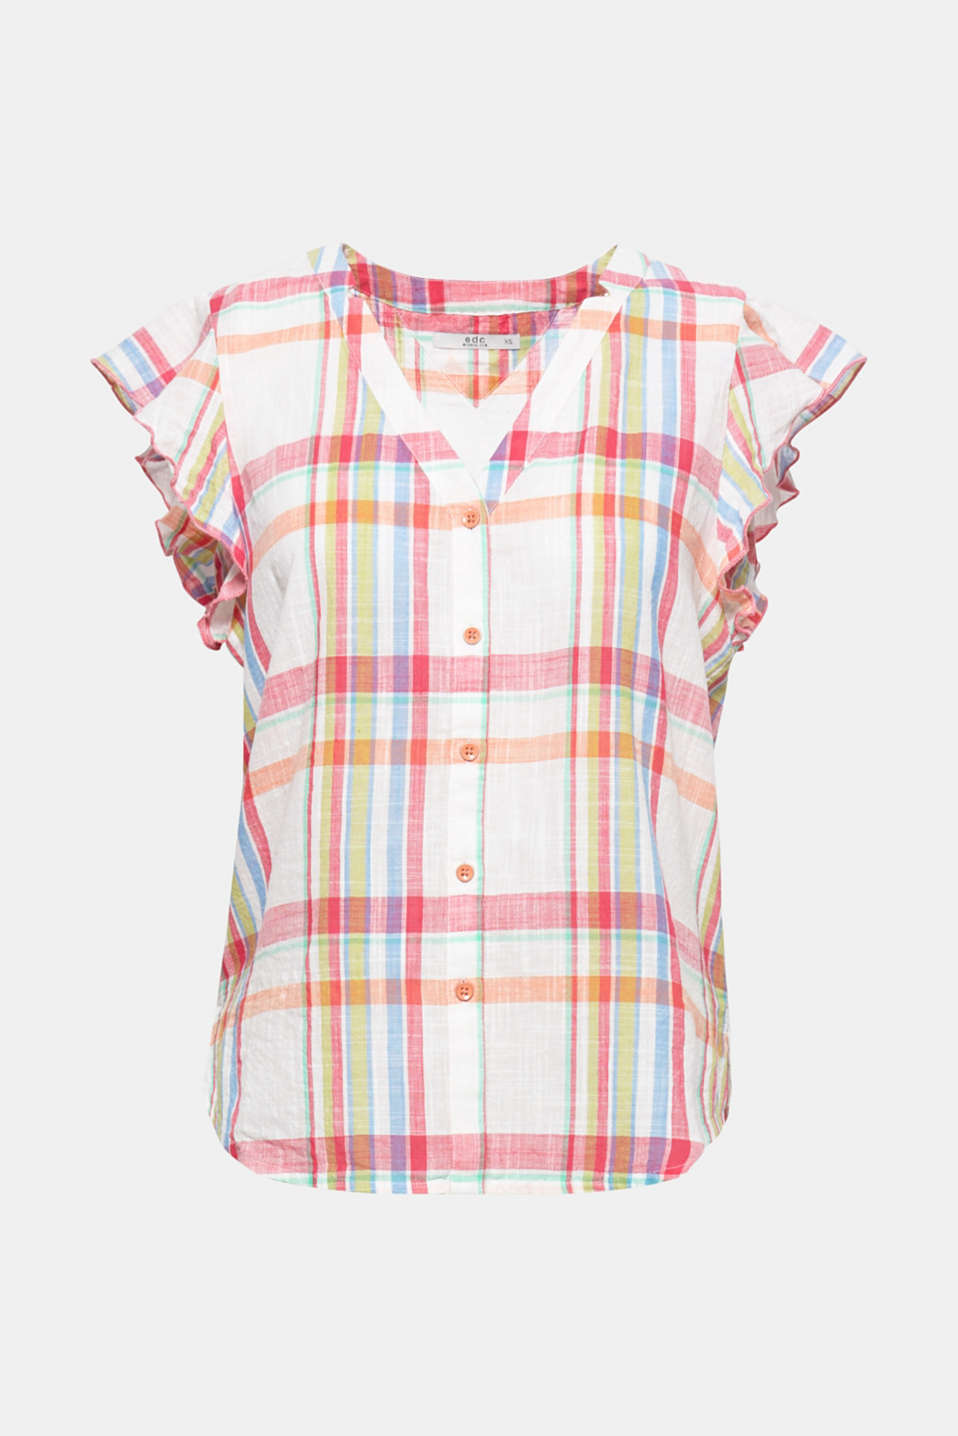 The pretty flounce sleeves and deep V-neck make this classically checked blouse both feminine and eye-catching!